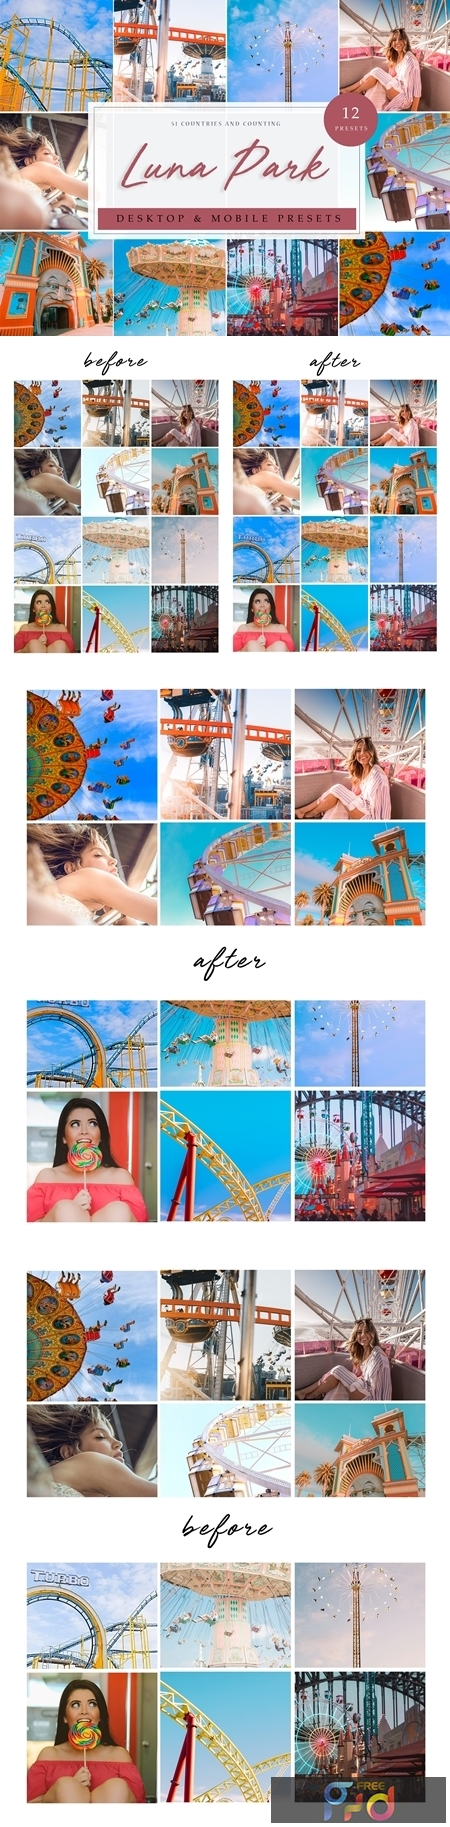 Lightroom Presets Luna Park 3922228 1